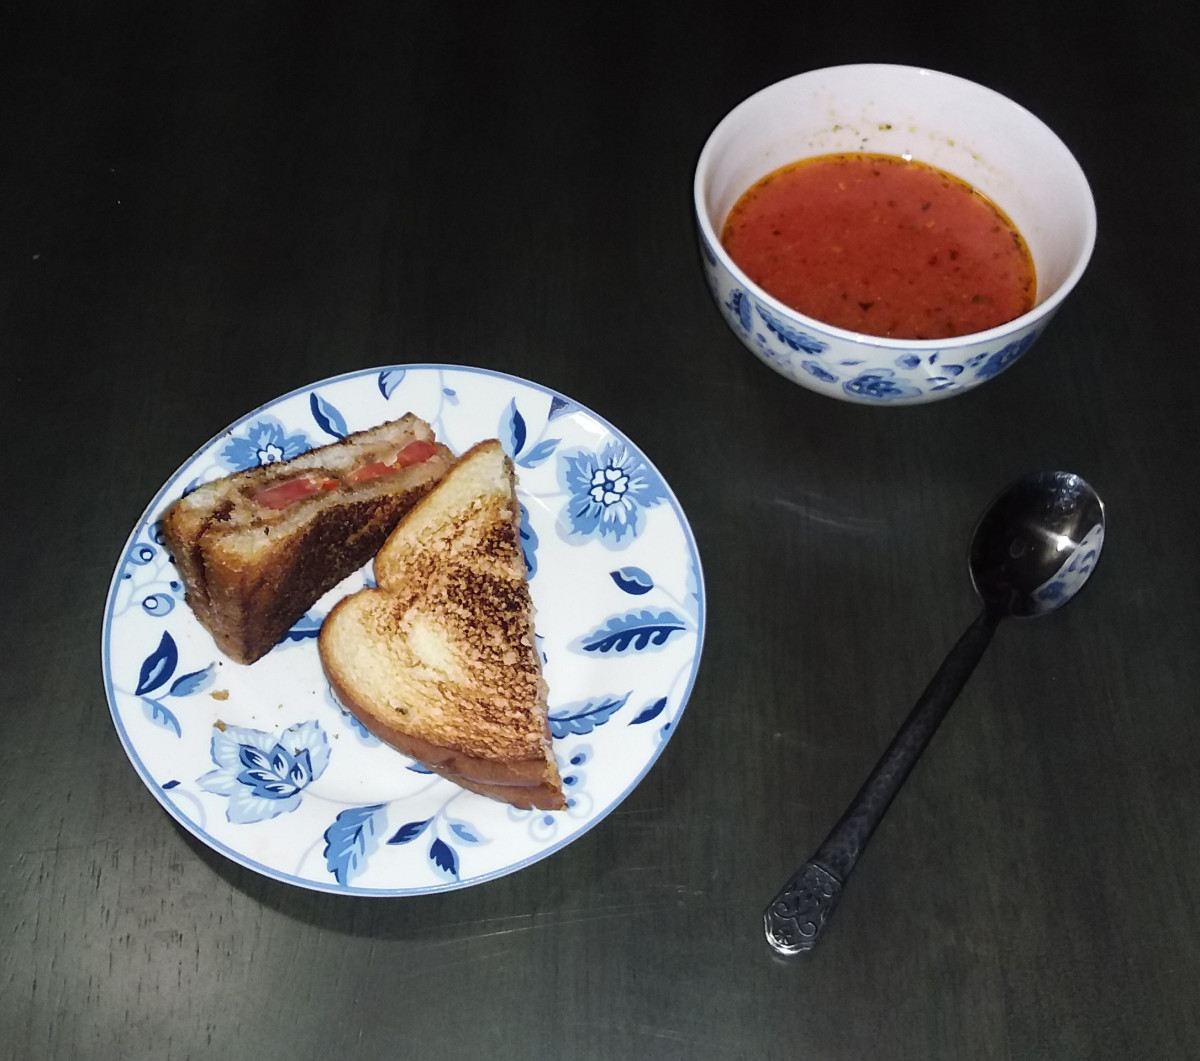 Grilled cheese and homemade tomato soup